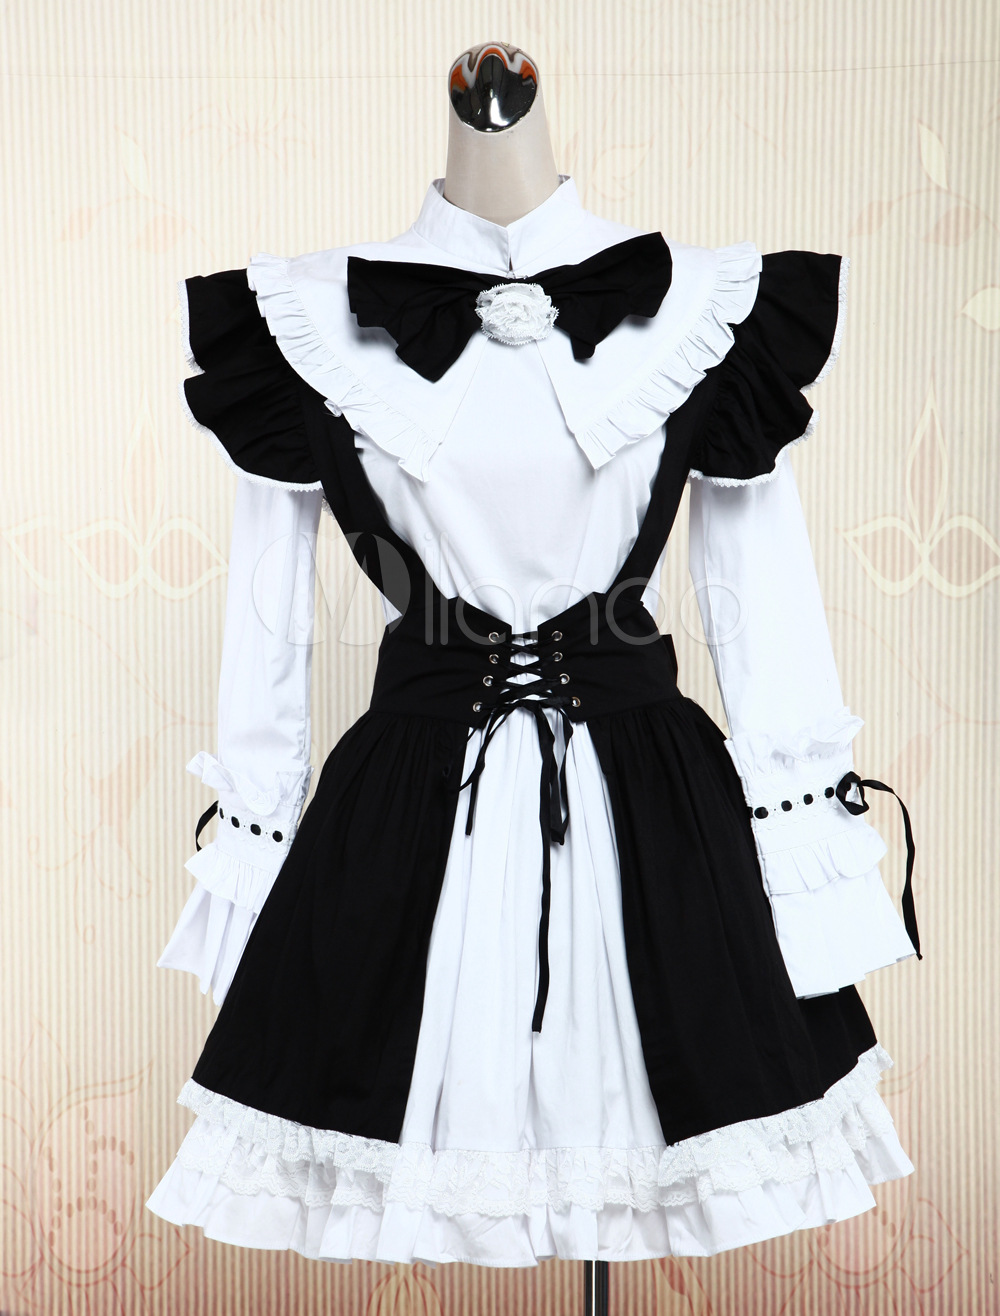 Free shipping! New Arrivals! High quality! Cotton White Long Sleeves Blouse And Black Cotton Punk Lolita Dress